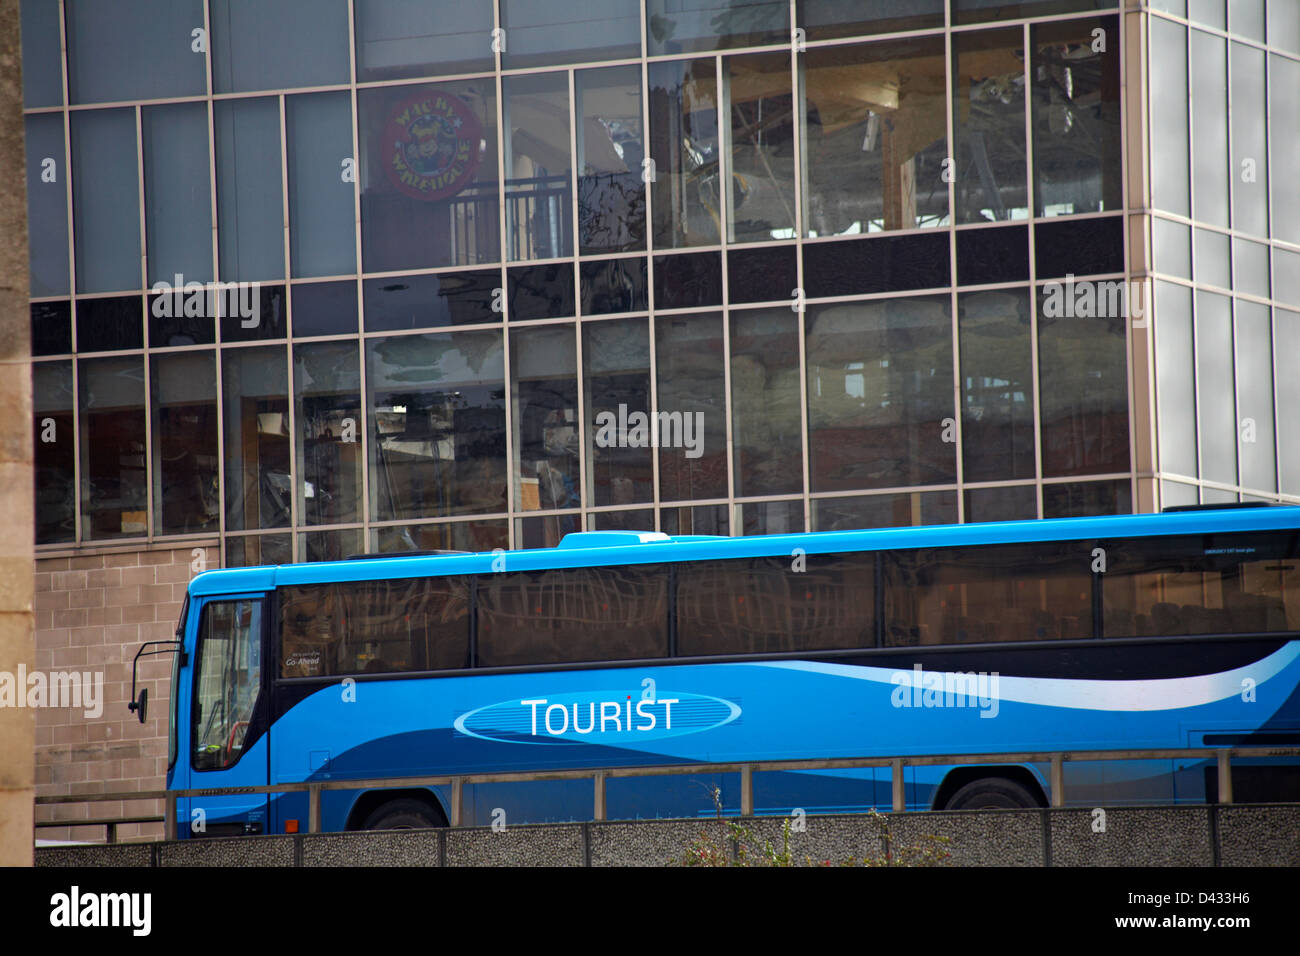 tourist coach going past Imax building currently being demolished at Bournemouth in February - Stock Image